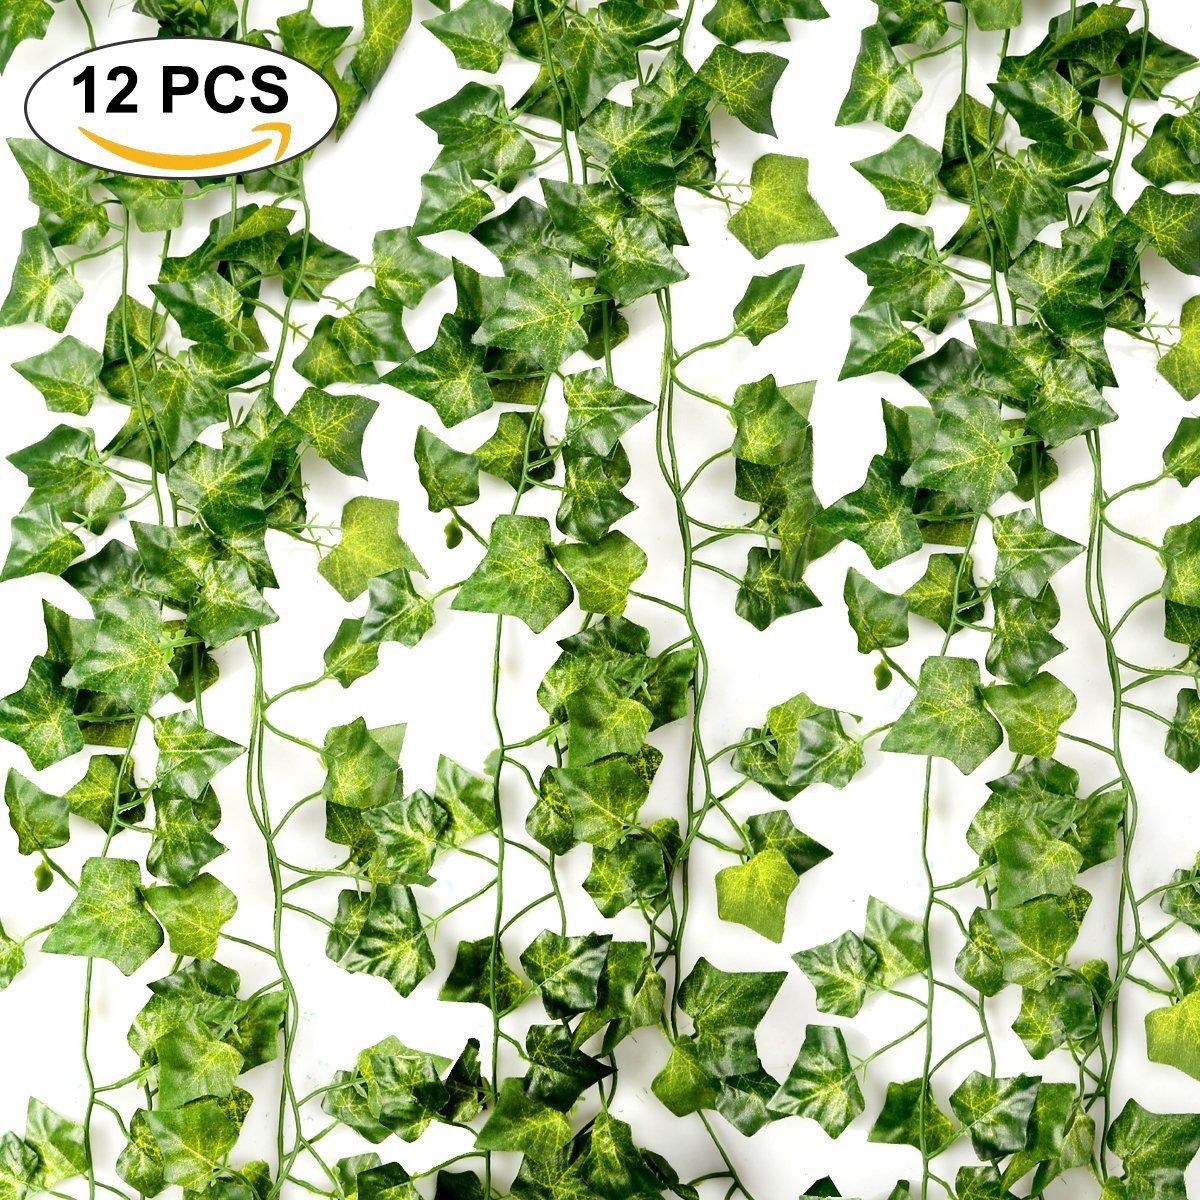 Artificial Ivy Leaf Garlands, 84 Ft-12 Pack Artificial Ivy Plant Garland Plants Vine Hanging Foliage Realistic Green Leaves Decoration Flowers For Home House Greenery Garden Office Wedding Decorations Yard Wall Staircase Fencing Christmas Autumn Outdoor J